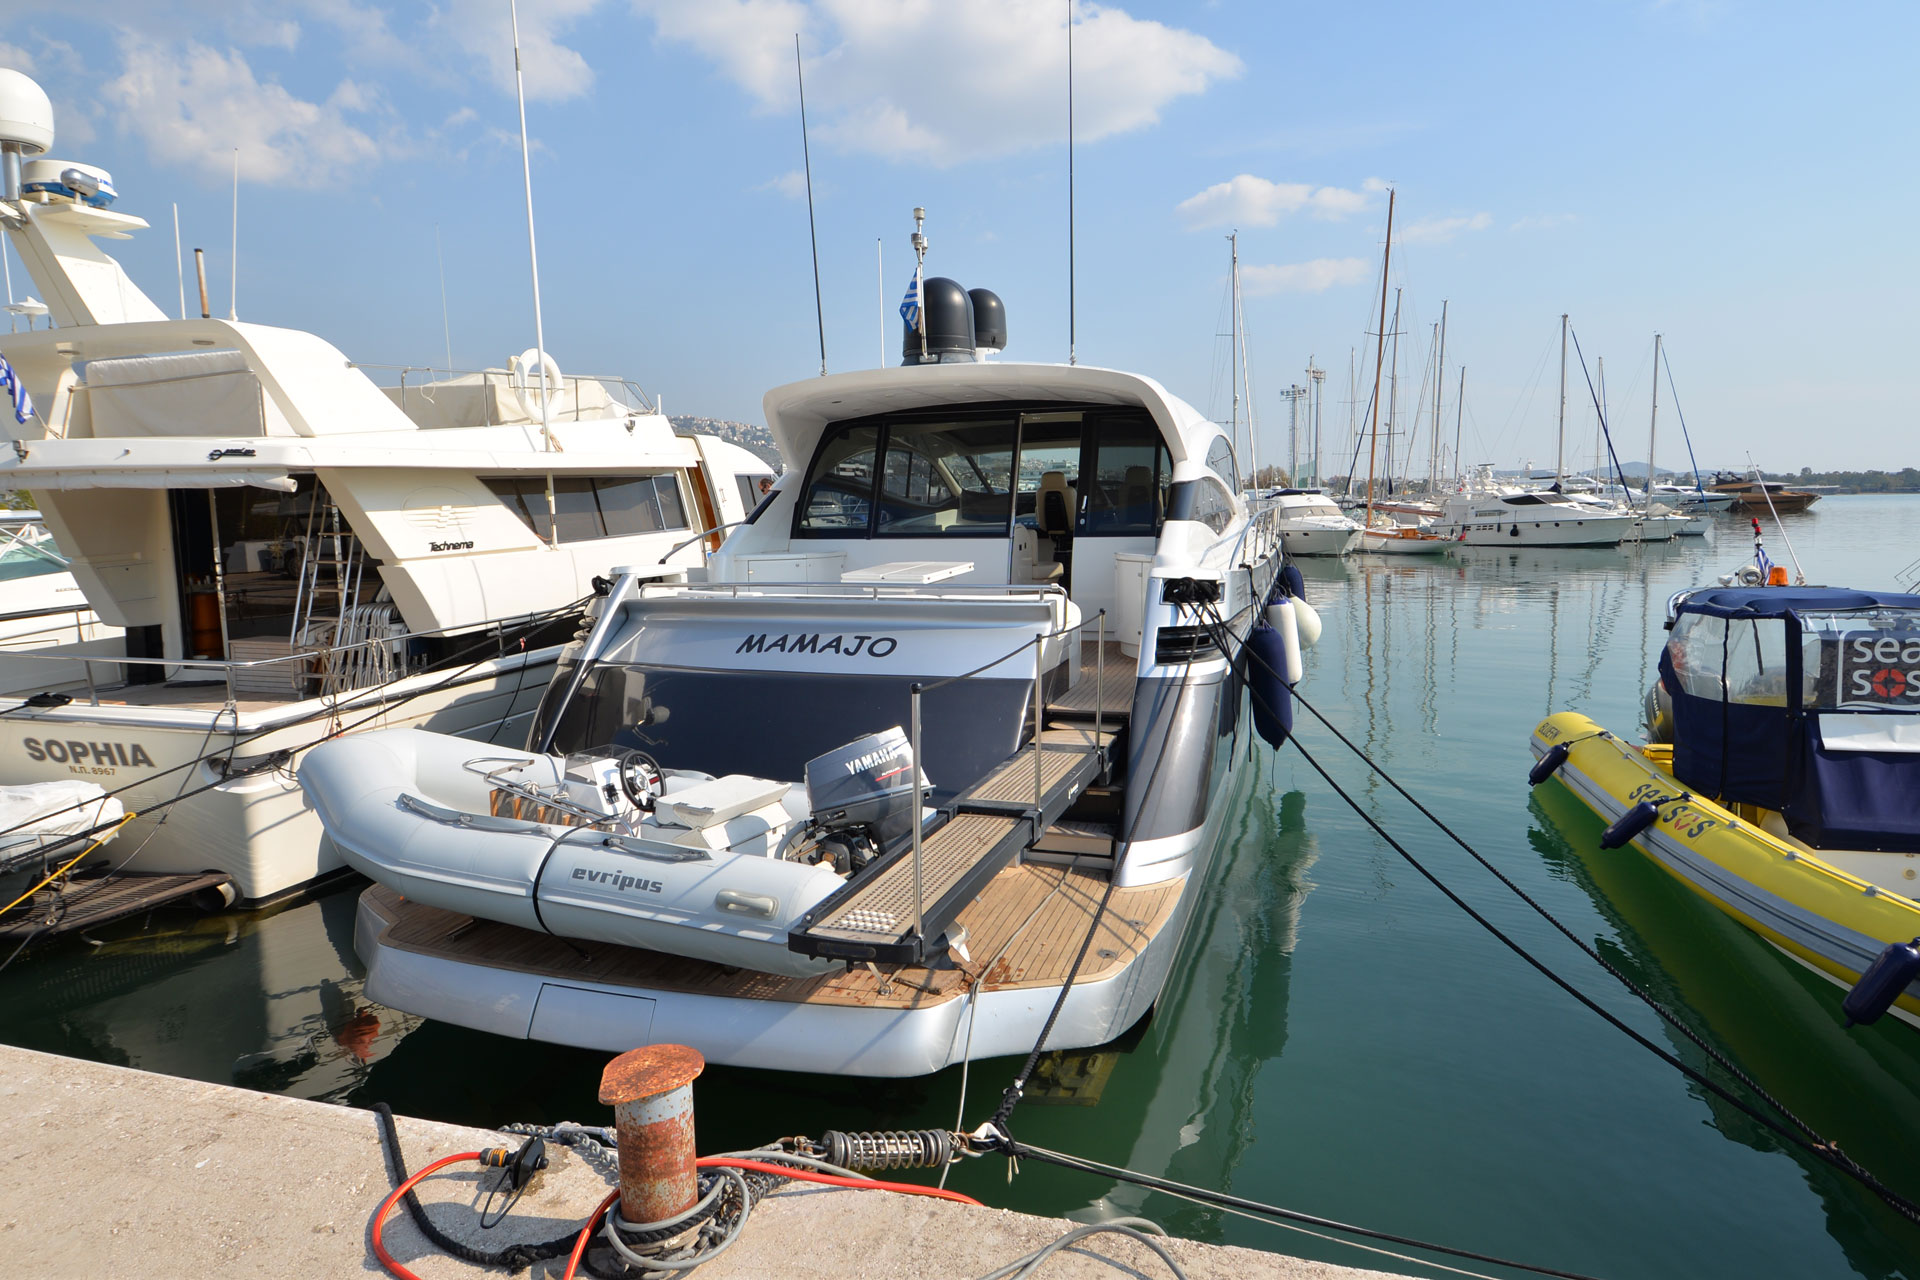 Santo-Maritime-Yachting-Pershing-Exterior-Image4